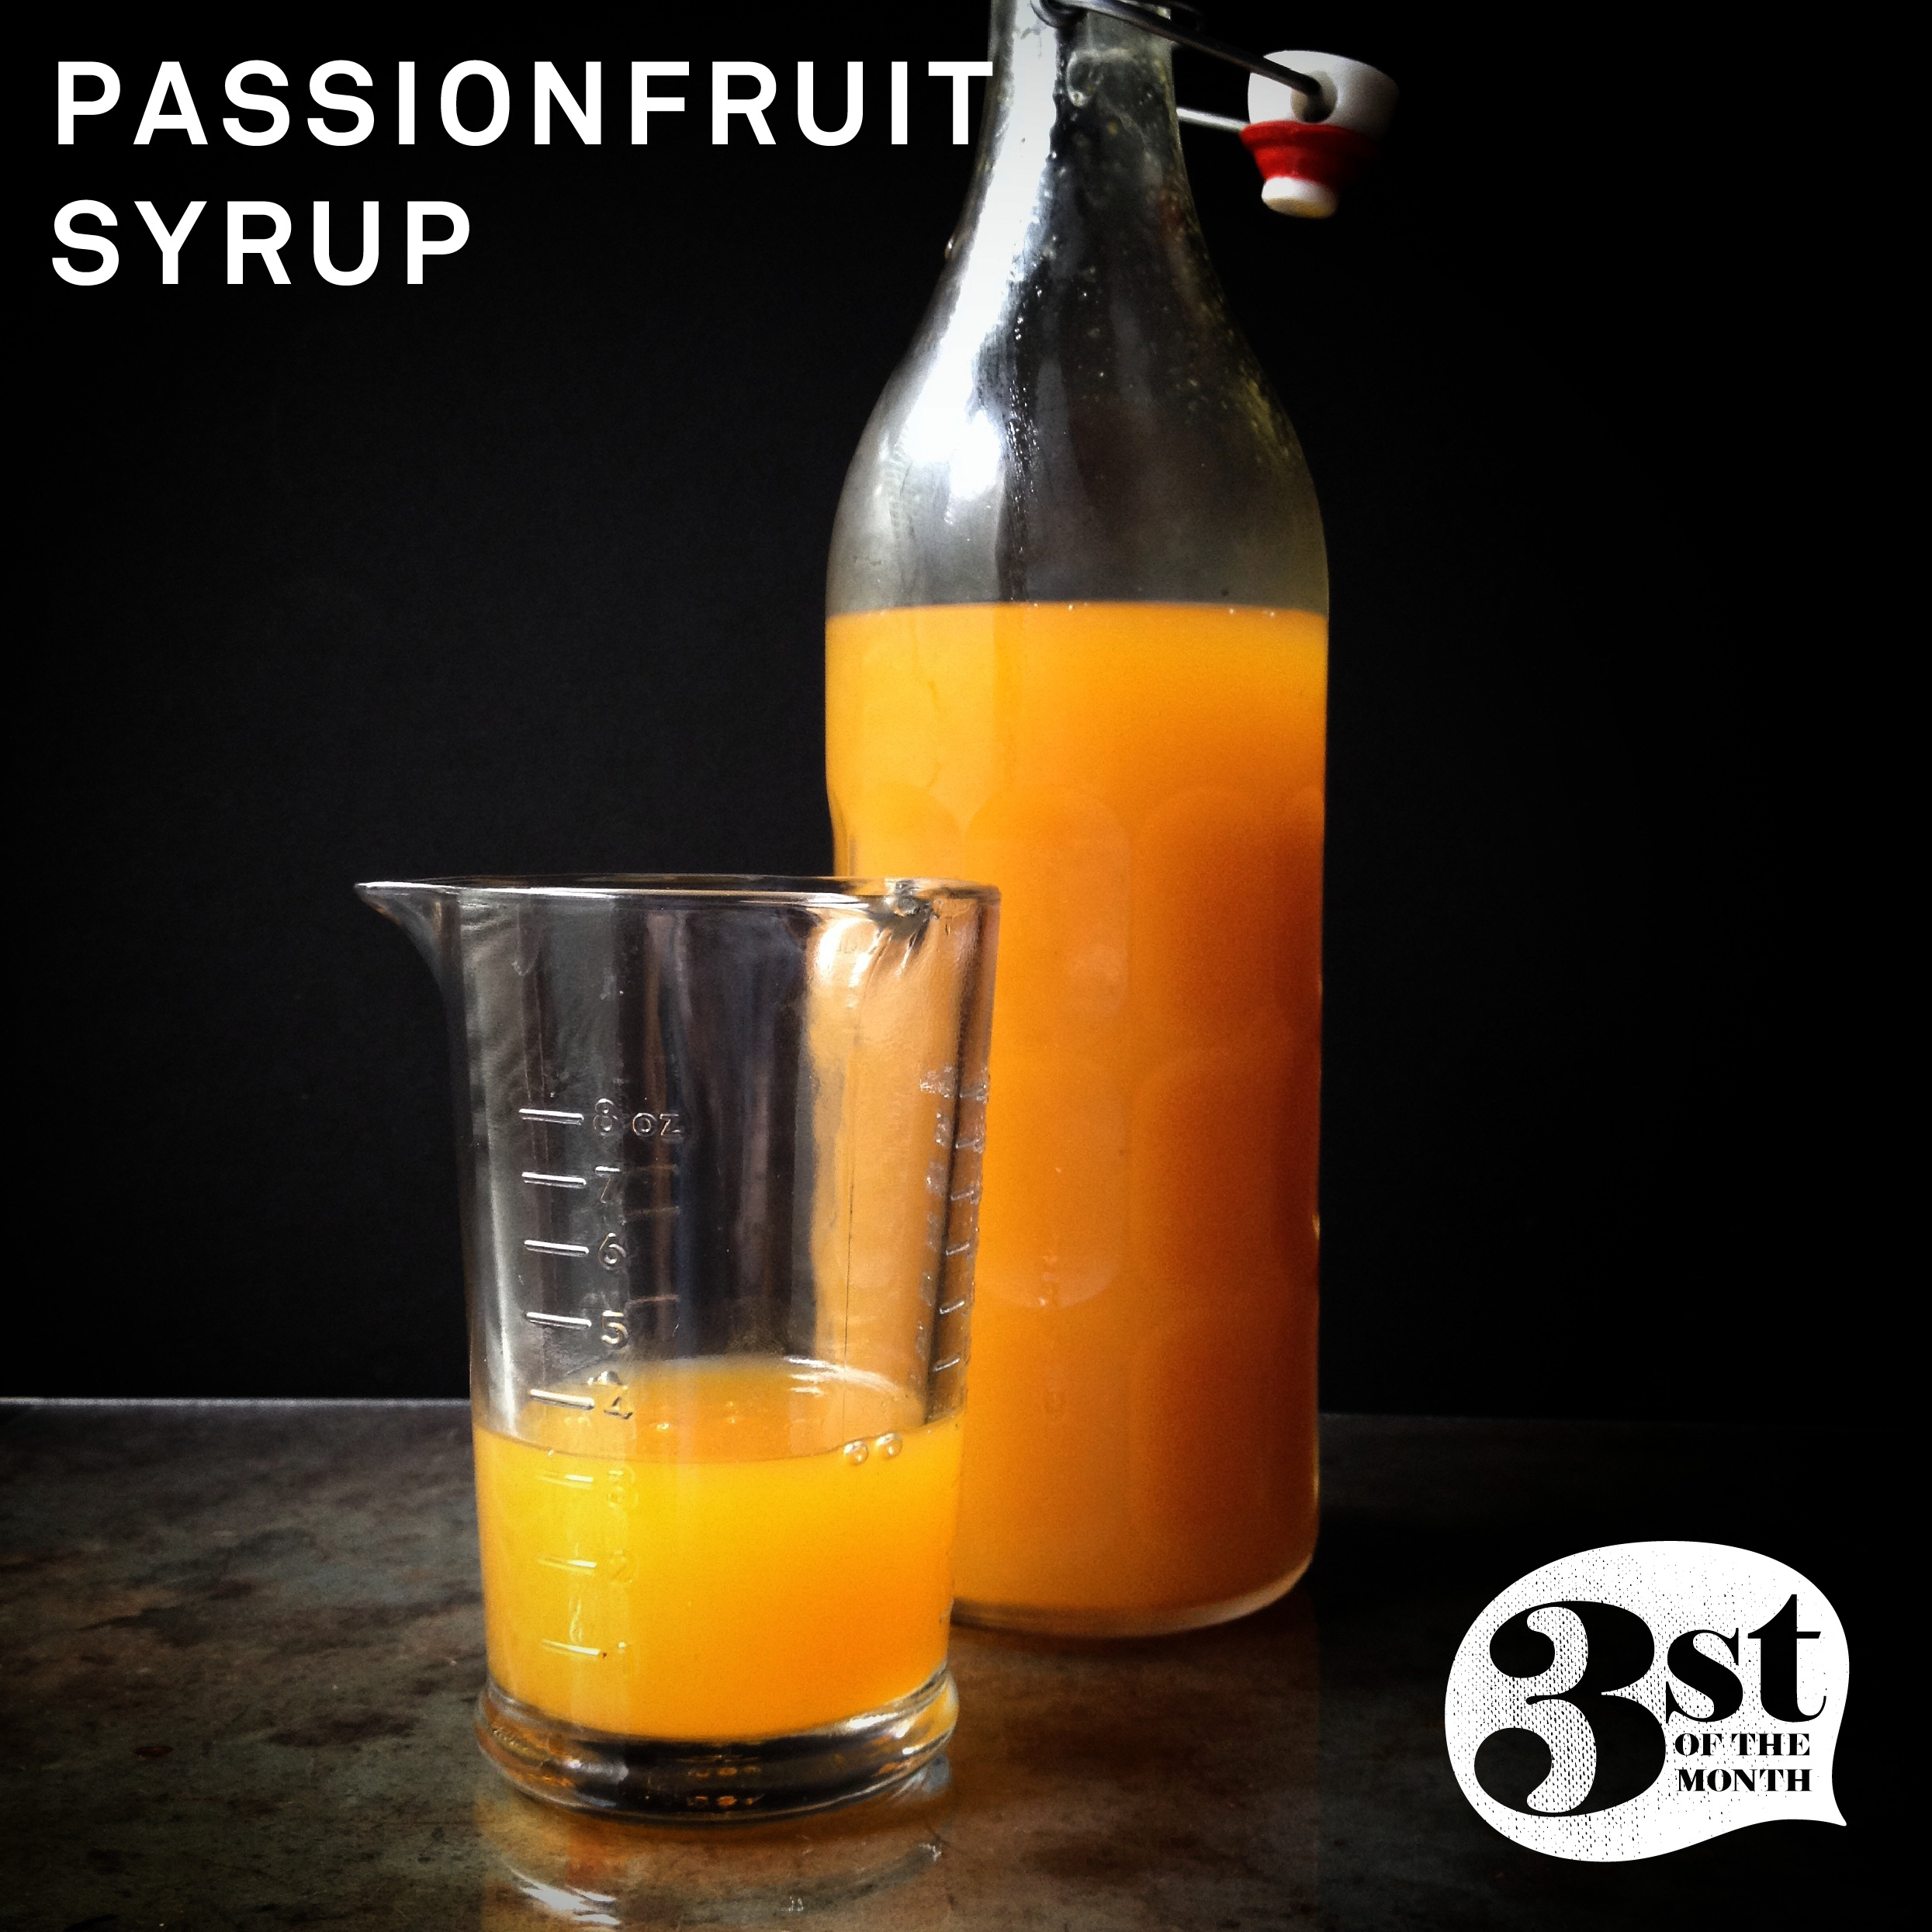 Make your own Passionfruit Syrup